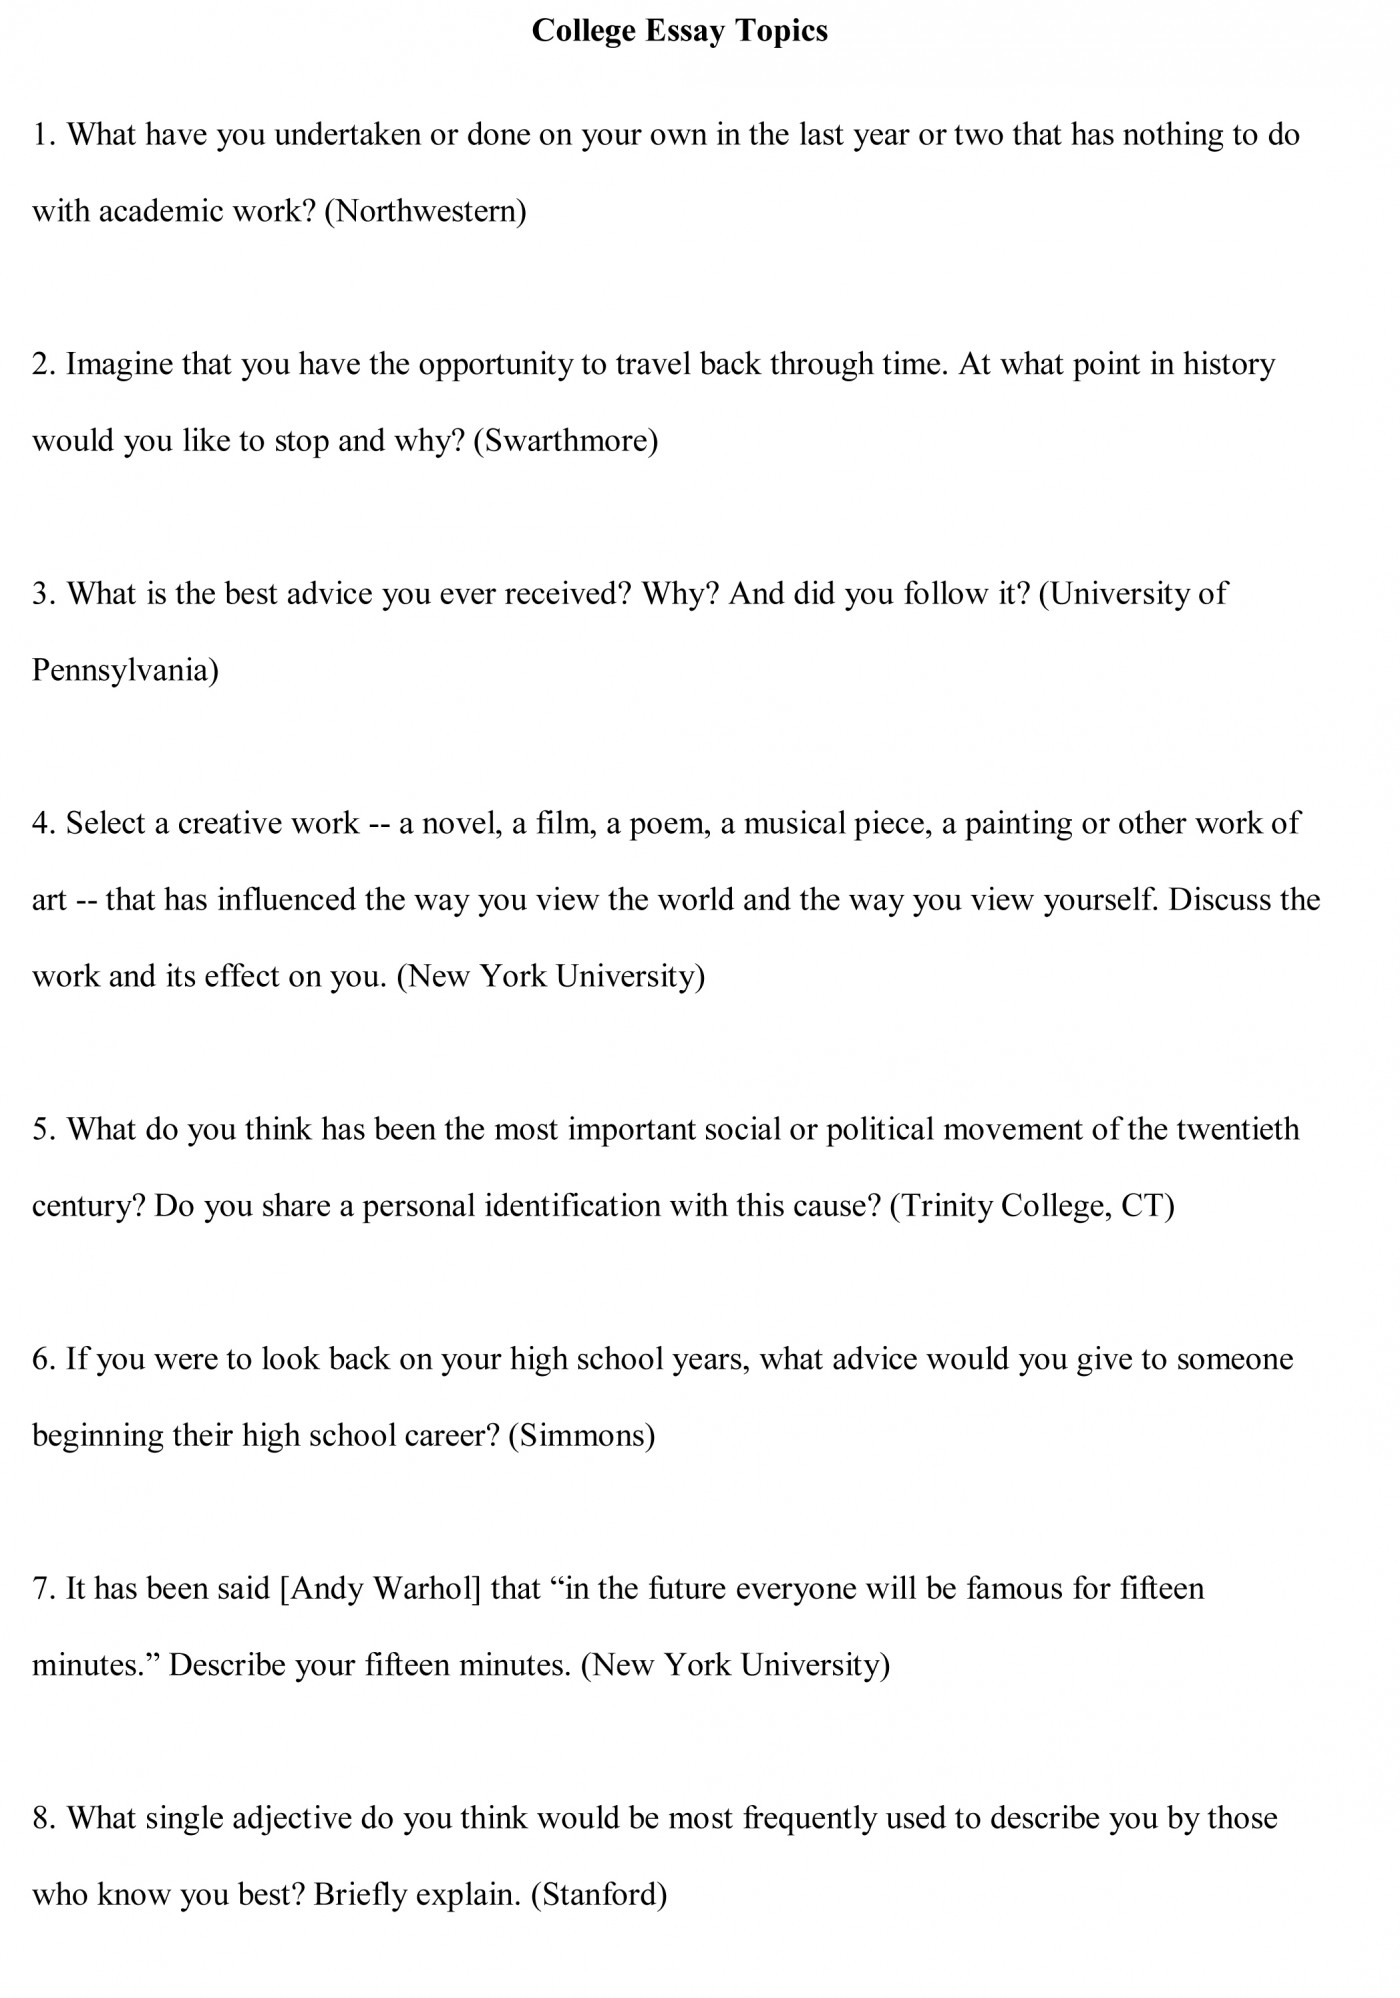 013 College Essay Topics Free Sample1 Research Paper Controversial Issue Breathtaking Example 1400